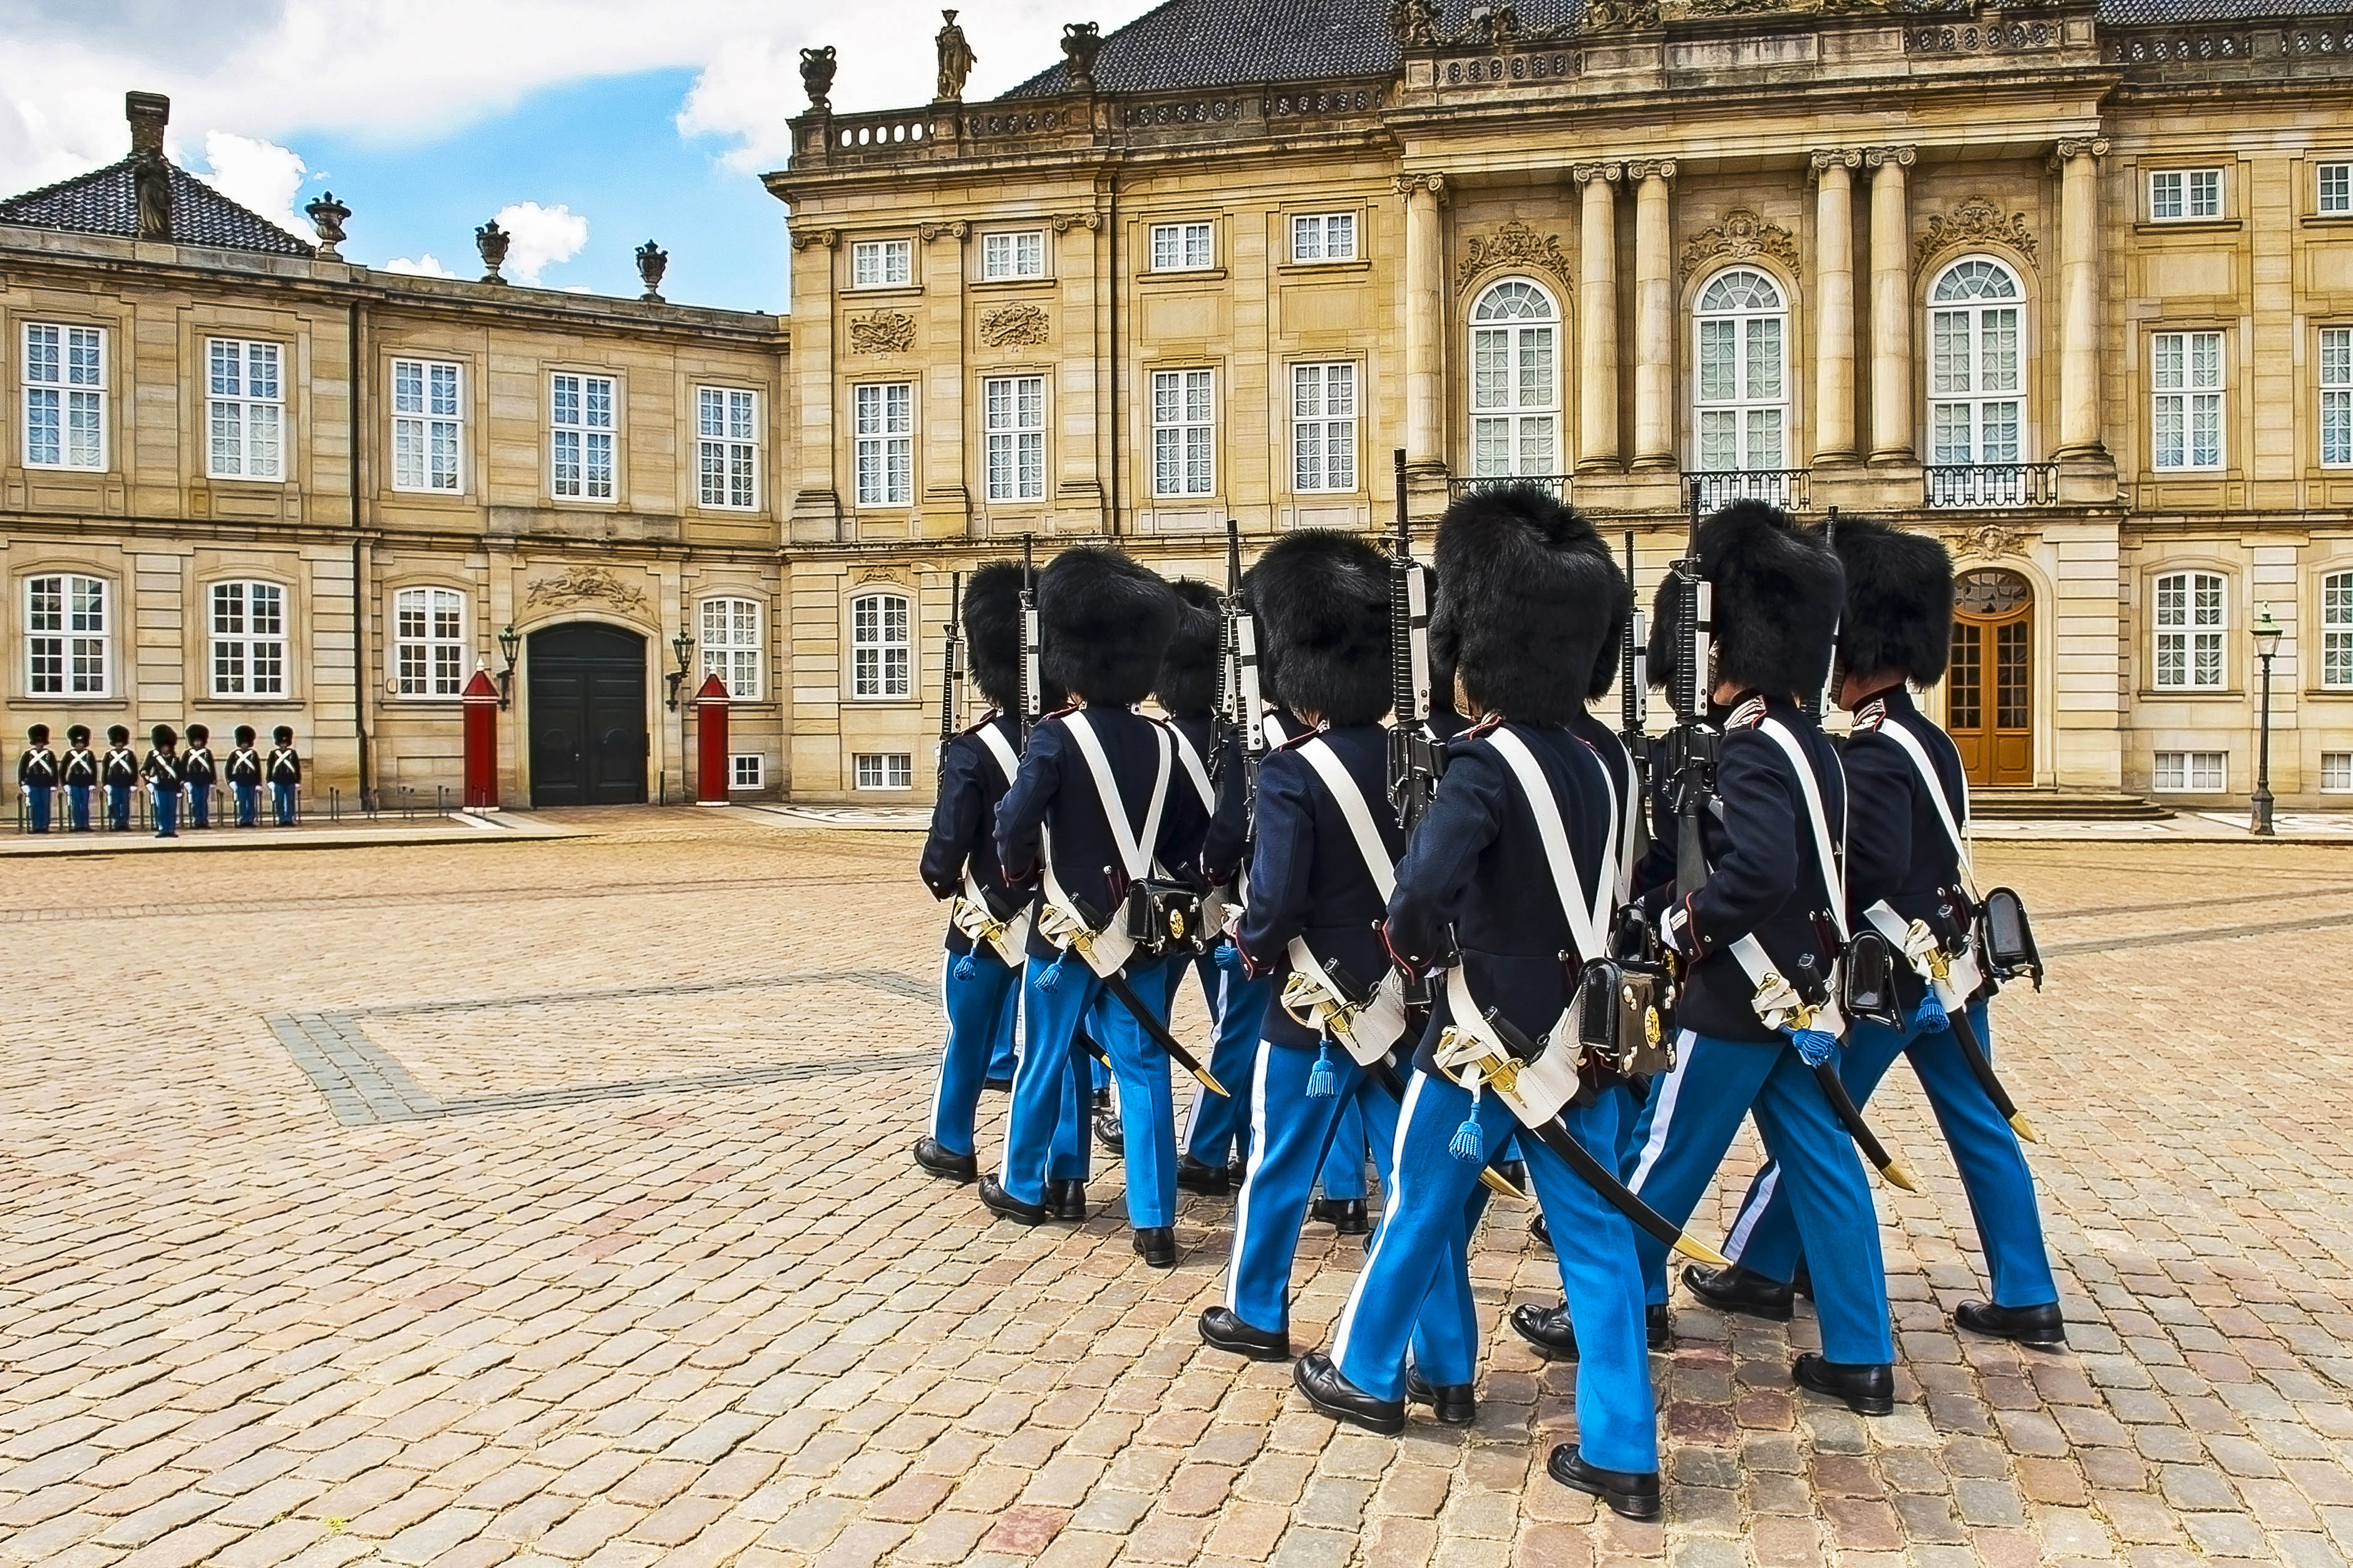 royal-guard-in-amalienborg-castle-in-copenhagen-in-denmark-shutterstock_203100286-2